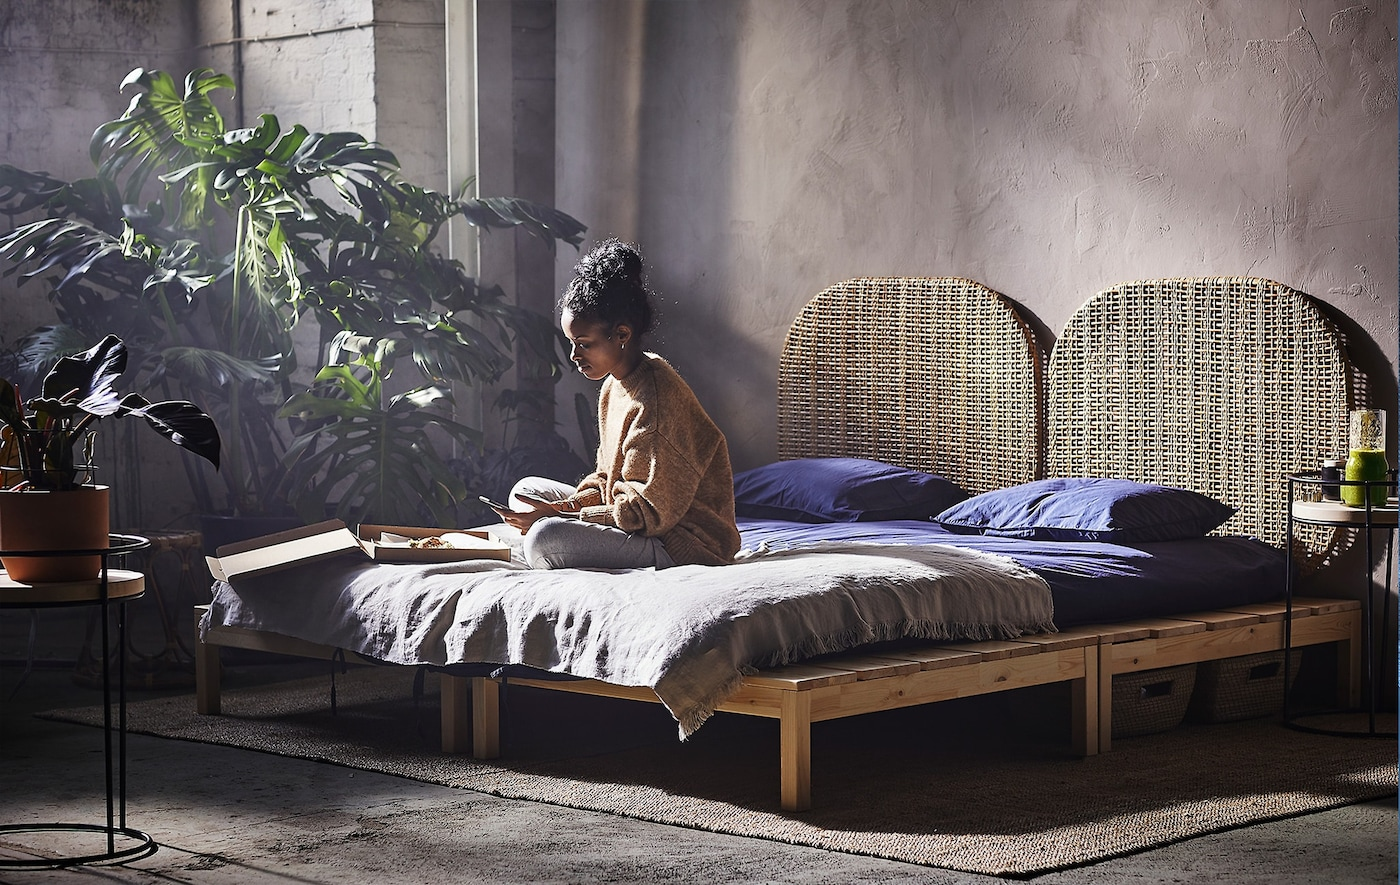 A woman sitting on a platform bed in a room with various plants for decoration.